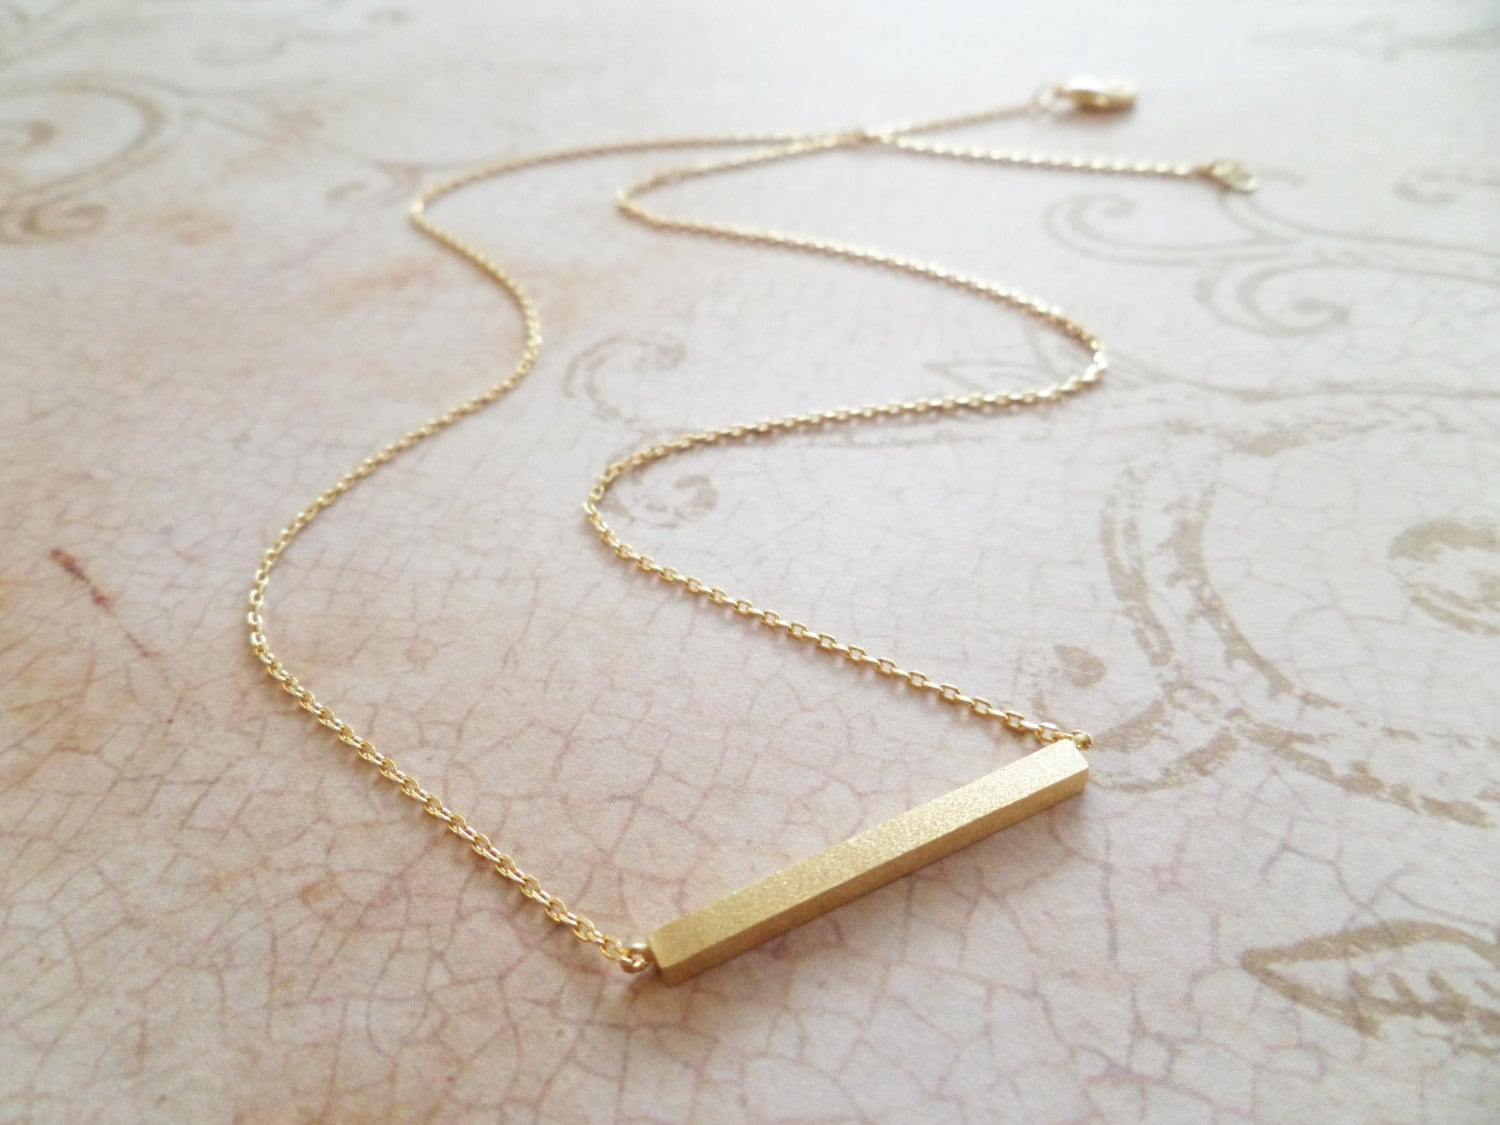 gold bar necklace dainty handmade necklace everyday